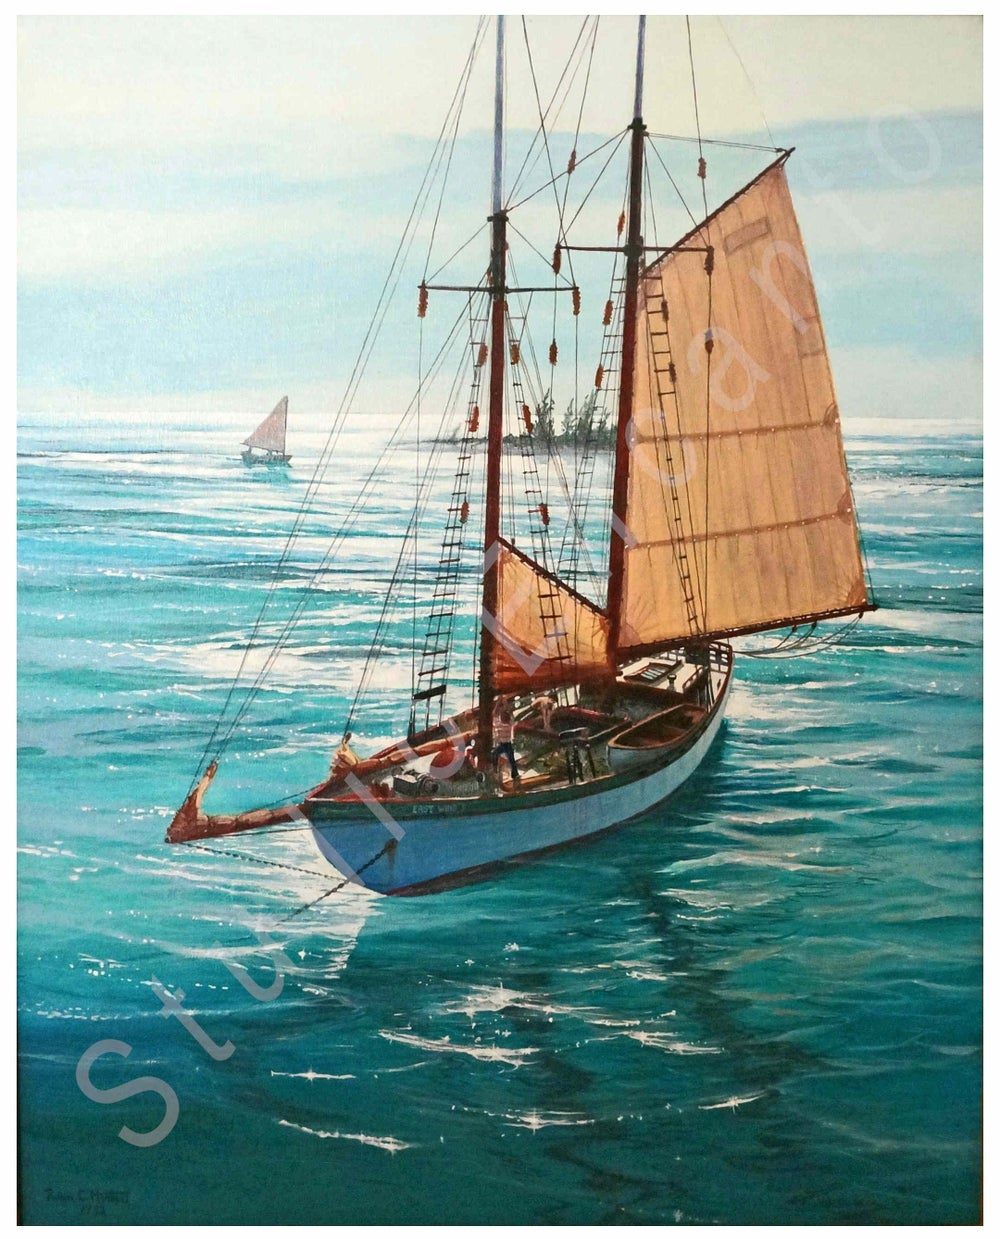 Image of Turtle Schooner at Anchor by Captain Roger C. Horton